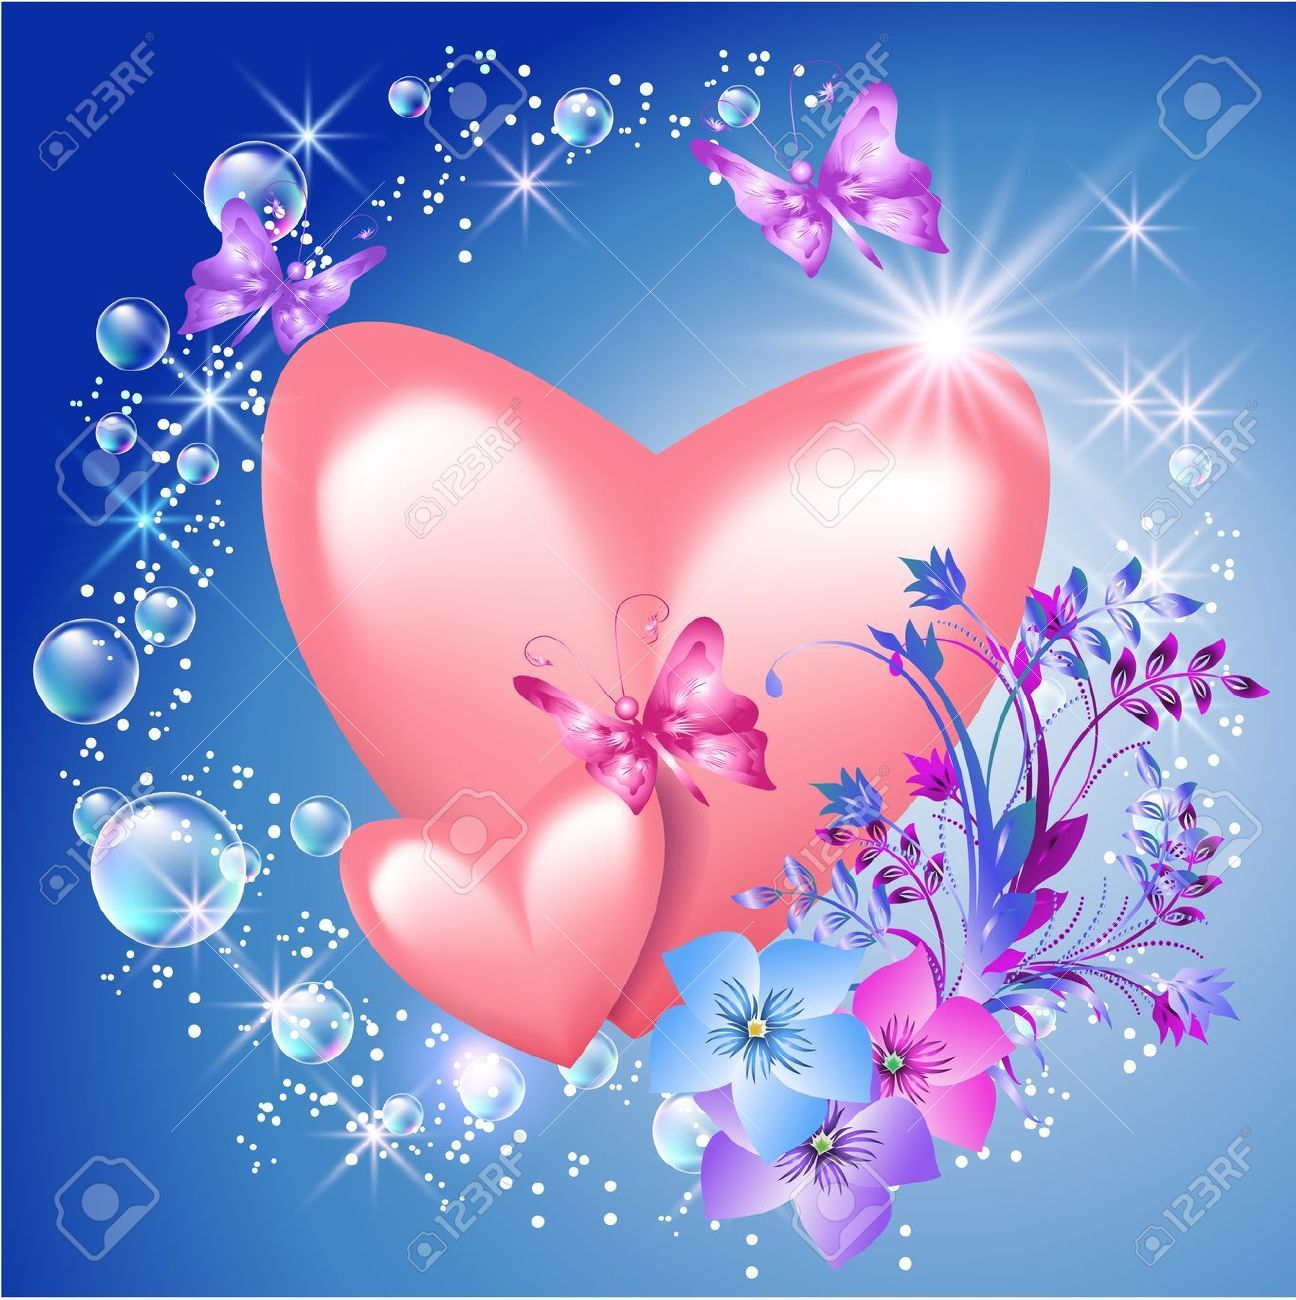 Butterfly And Flower Wall Stickers Hearts And Flowers Background Google Search 1 Hearts